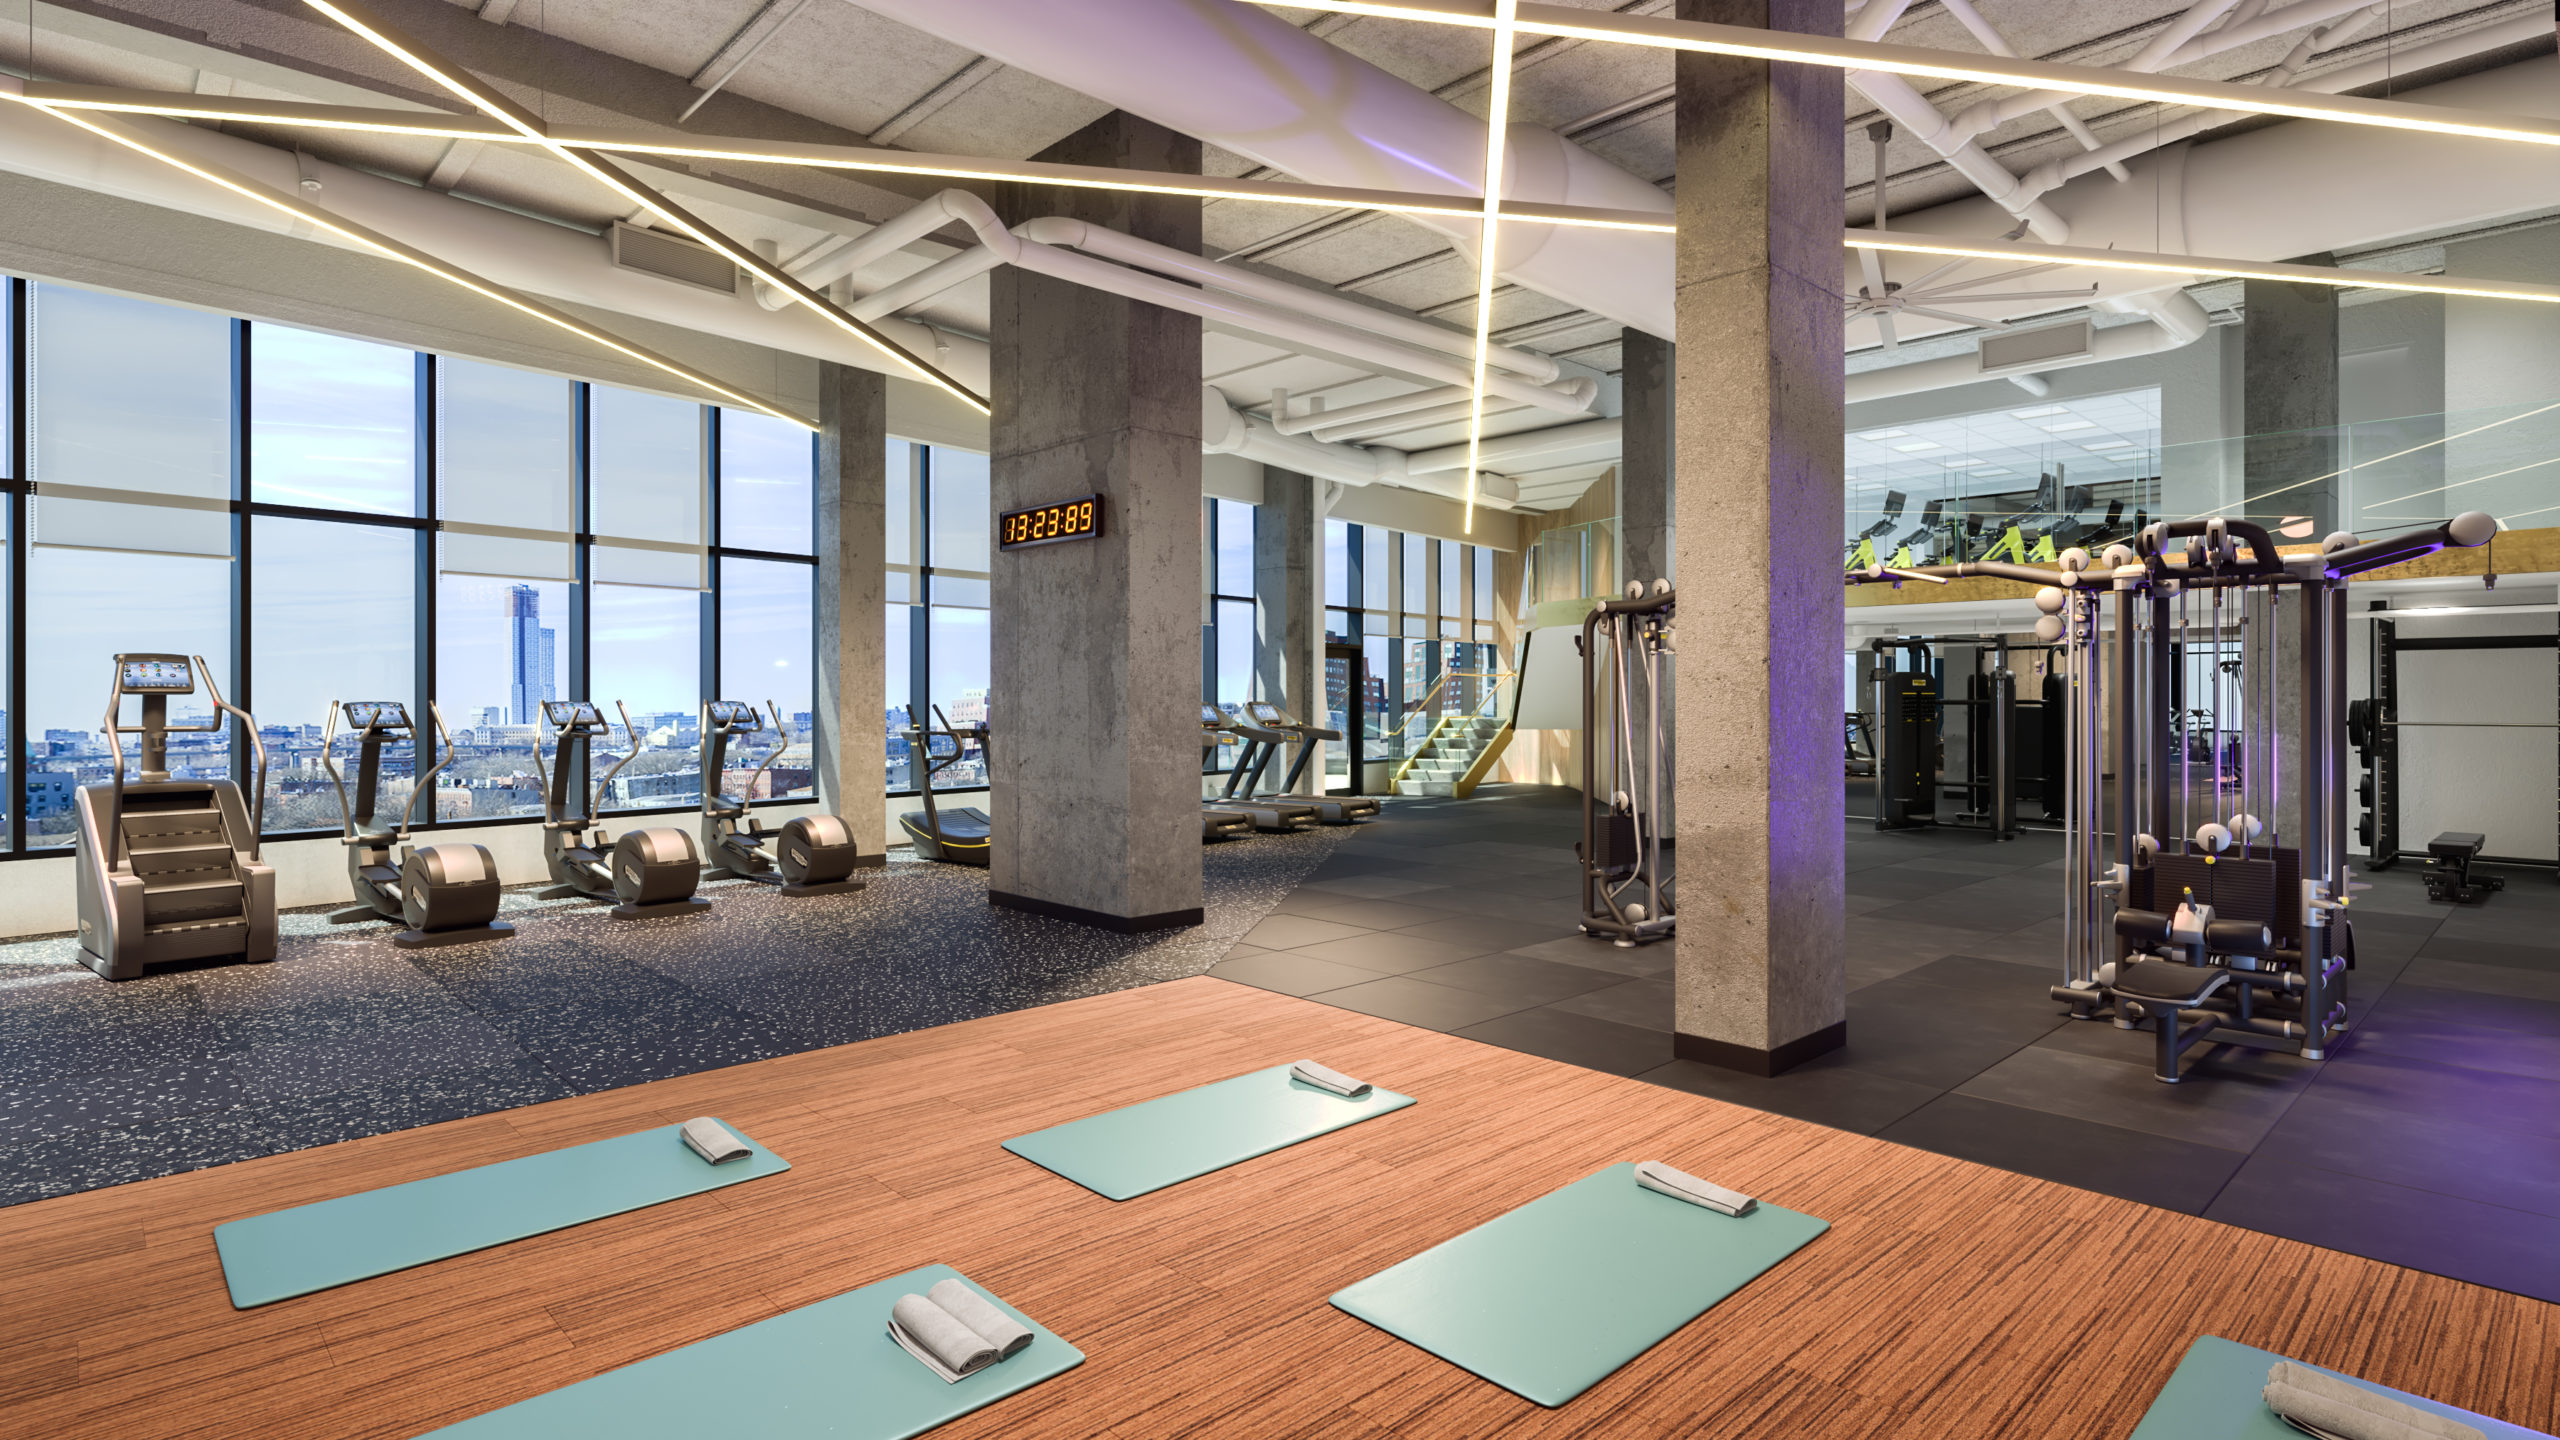 vyv south fitness center with yoga matts and ellipticals